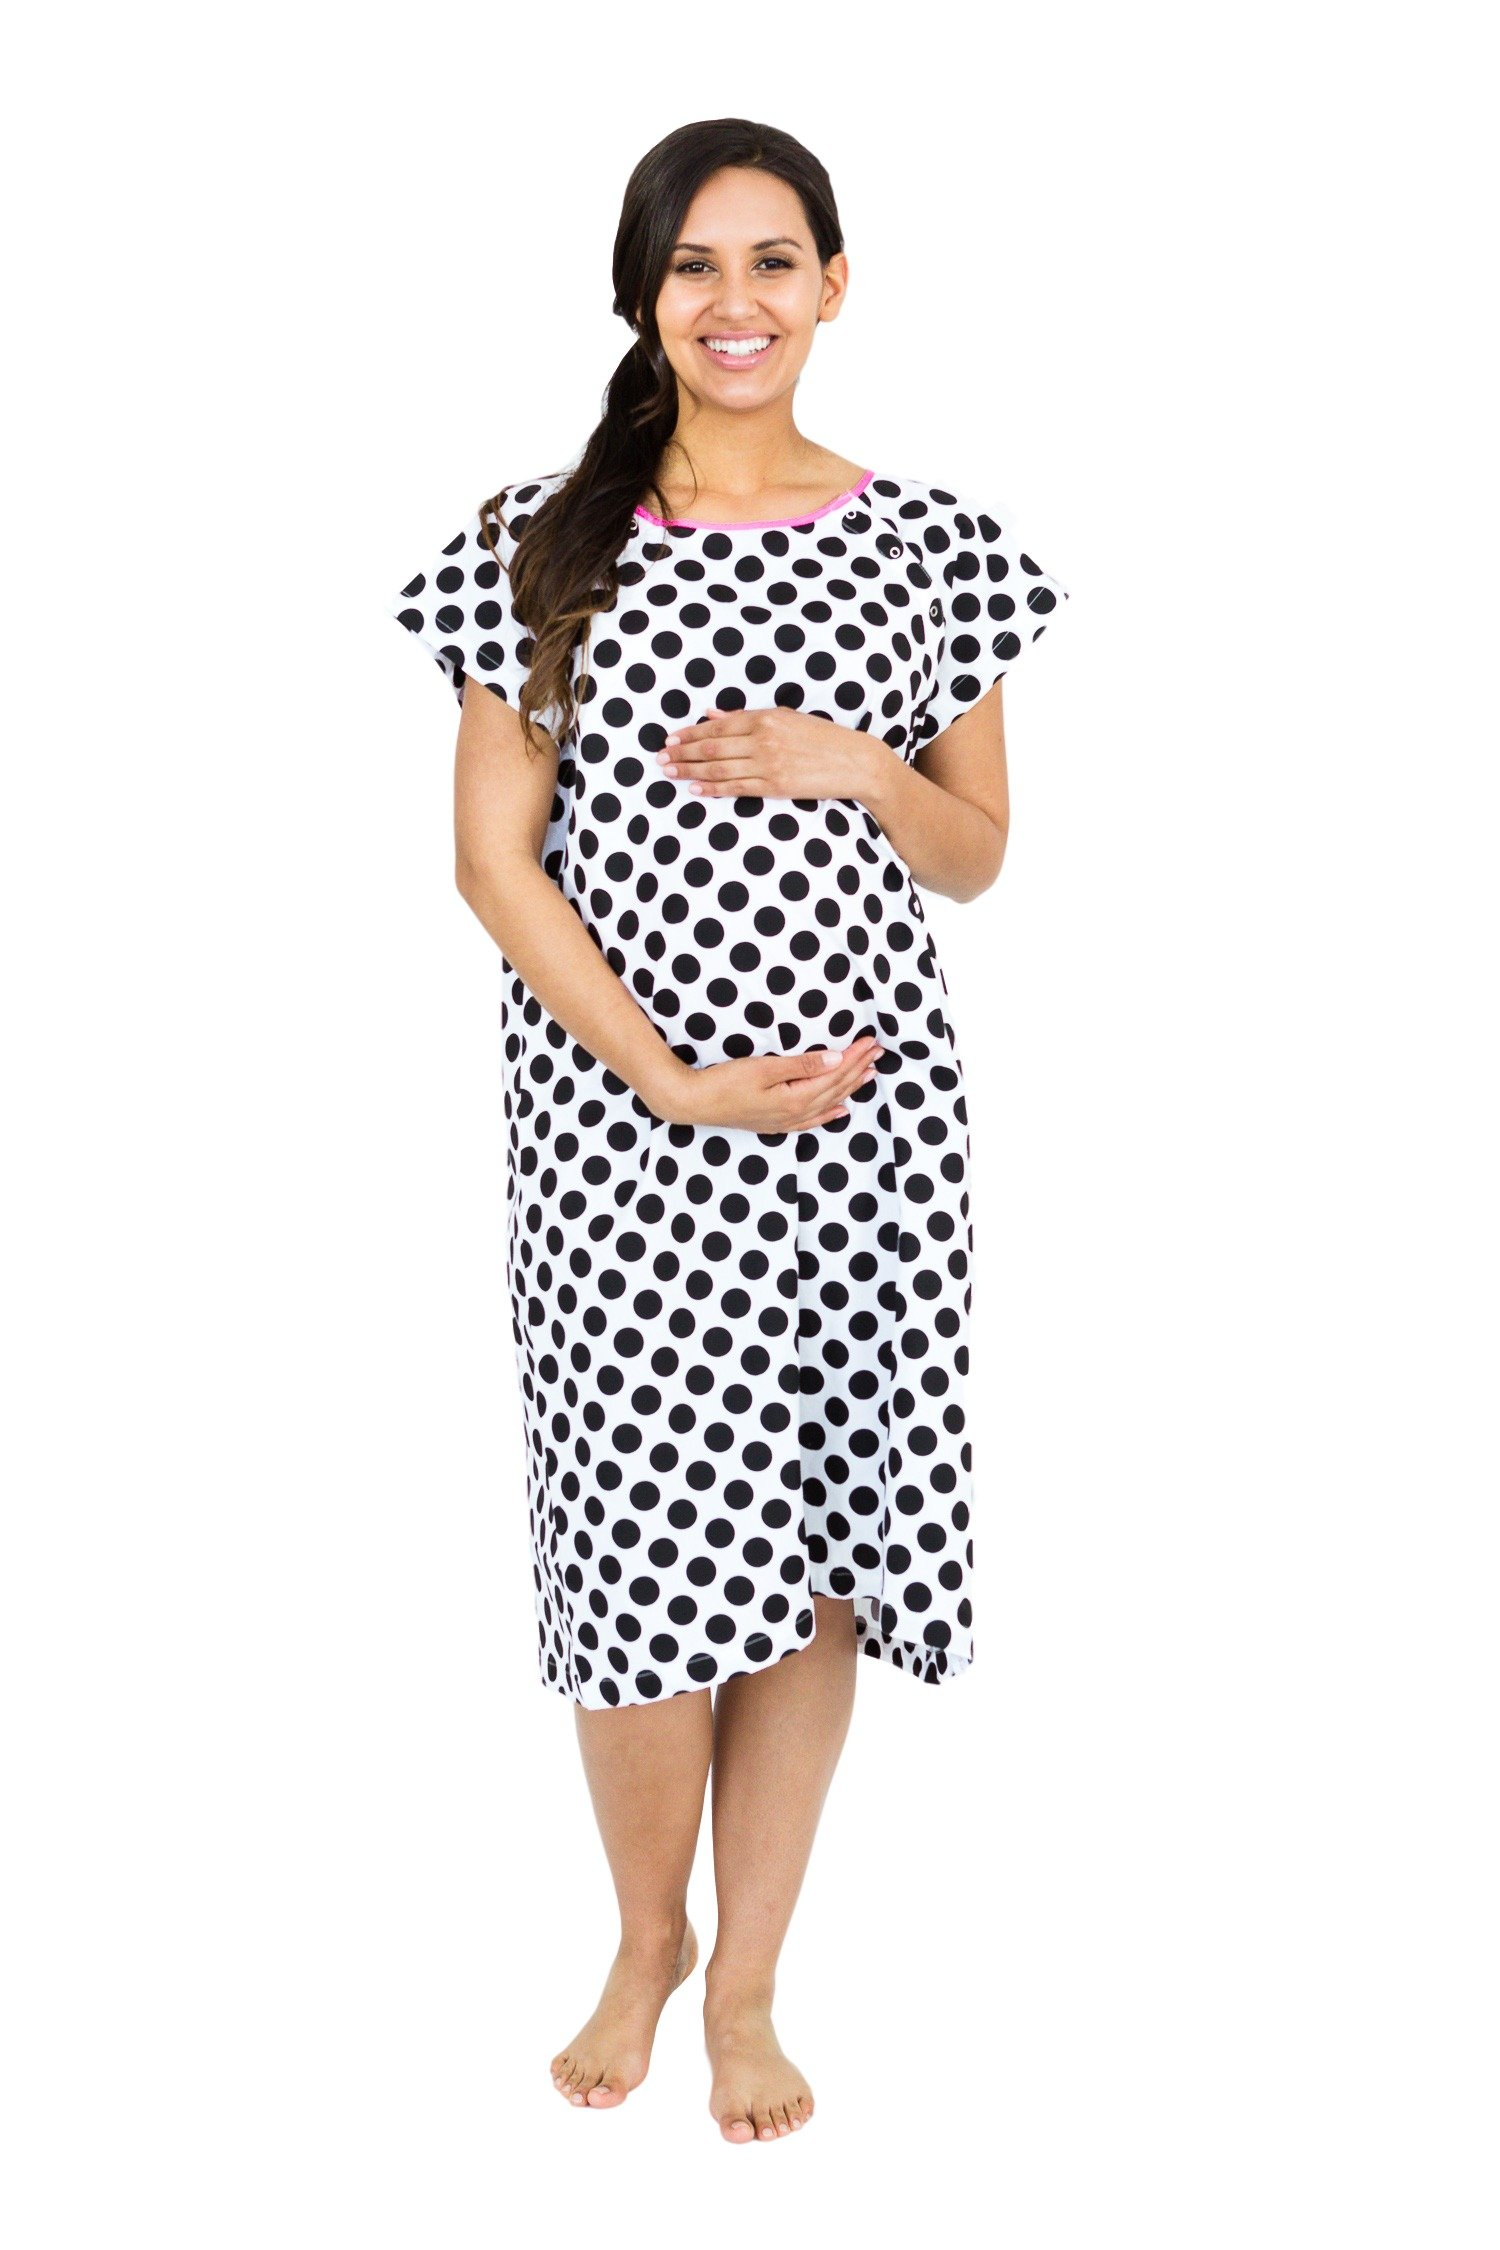 Gownies - Labor & Delivery Maternity Hospital Gown (S/M pre ...